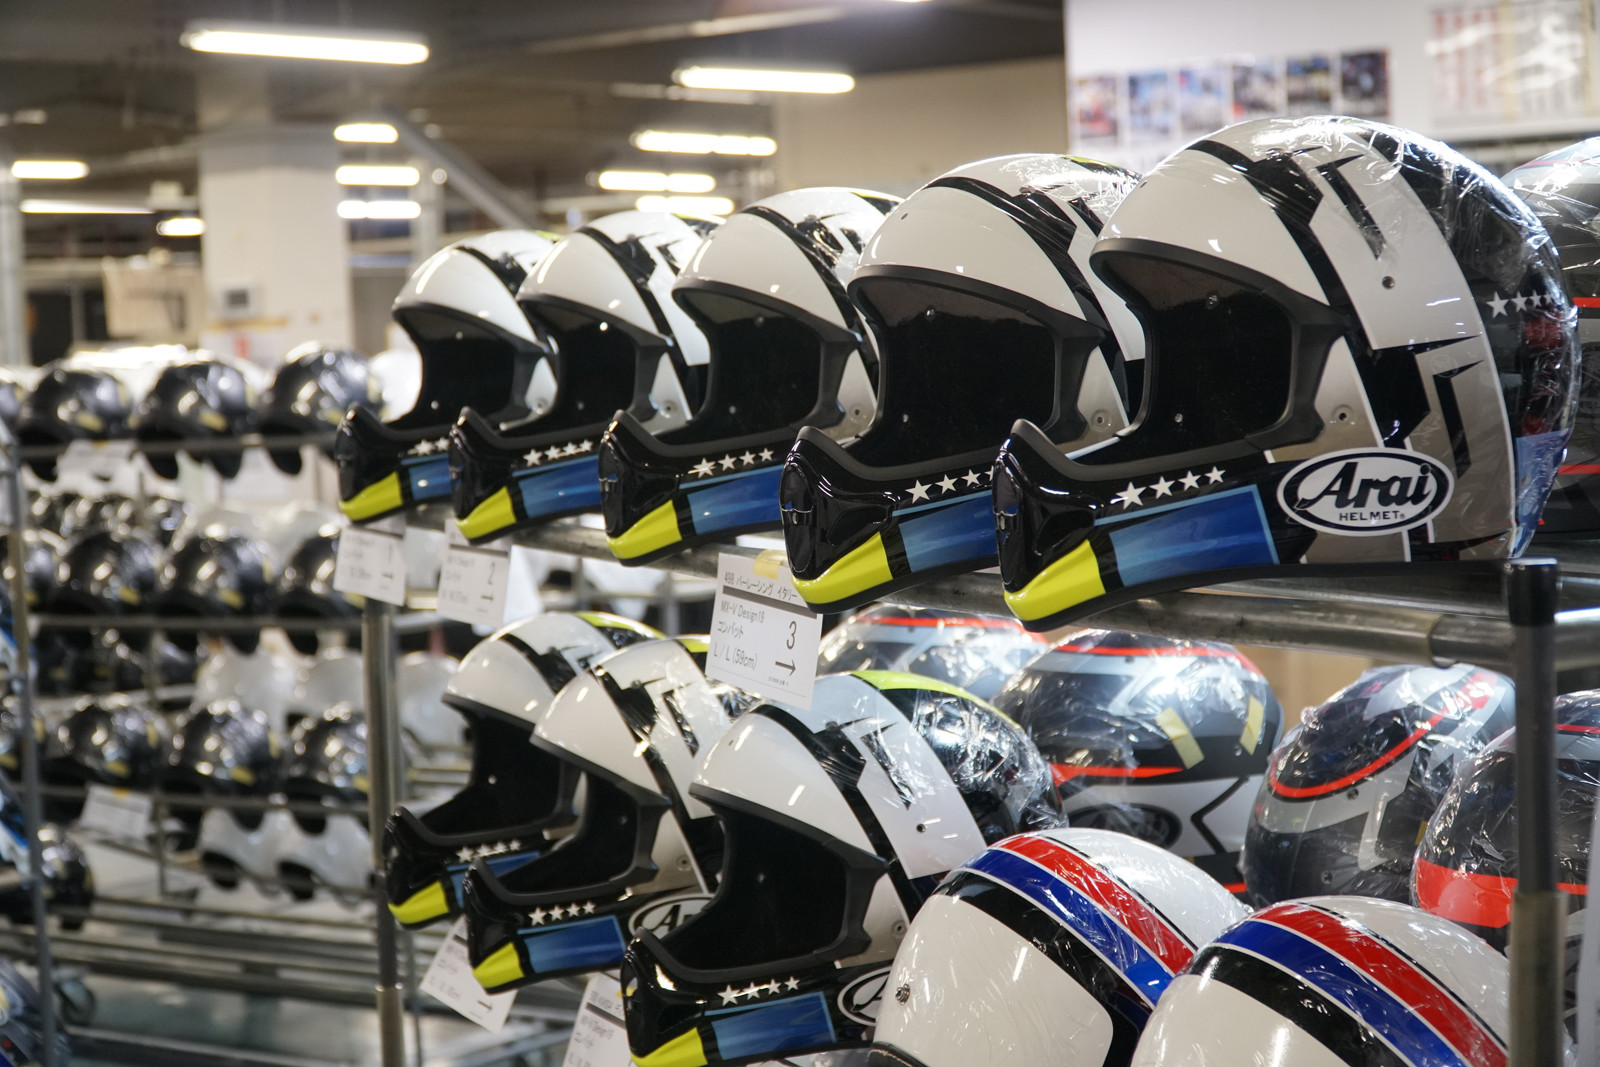 Arai VX-Pro4 shells on their way to assembly.